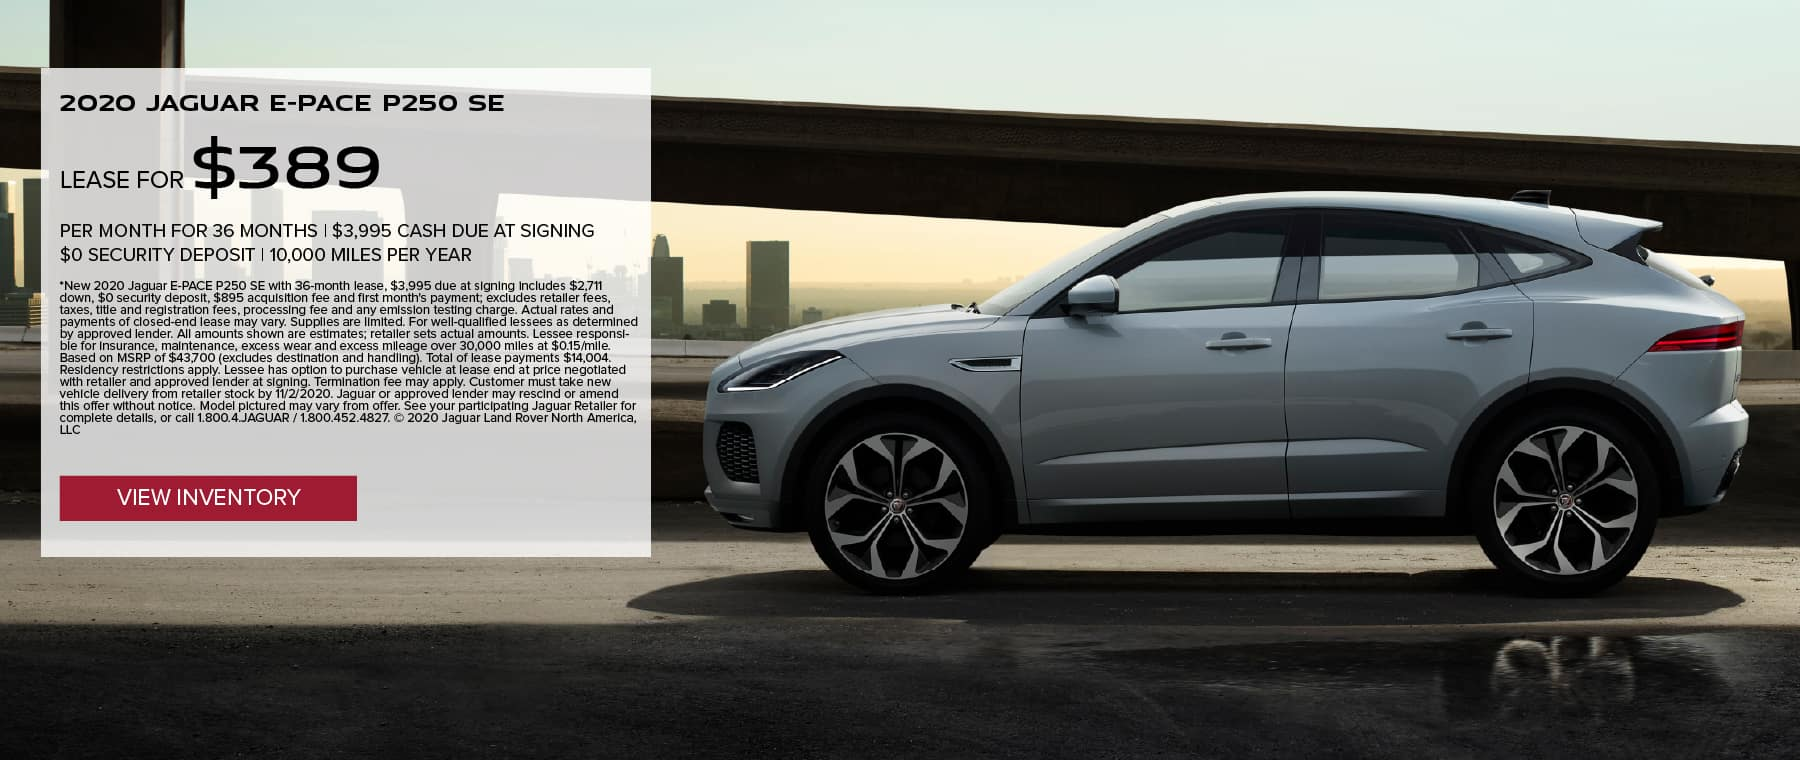 2020 JAGUAR E-PACE P250 SE. $389 PER MONTH. 36 MONTH LEASE TERM. $3,995 CASH DUE AT SIGNING. $0 SECURITY DEPOSIT. 10,000 MILES PER YEAR. EXCLUDES RETAILER FEES, TAXES, TITLE AND REGISTRATION FEES, PROCESSING FEE AND ANY EMISSION TESTING CHARGE. OFFER ENDS 11/2/2020. VIEW INVENTORY. WHITE JAGUAR E-PACE DRIVING DOWN ROAD IN CITY.